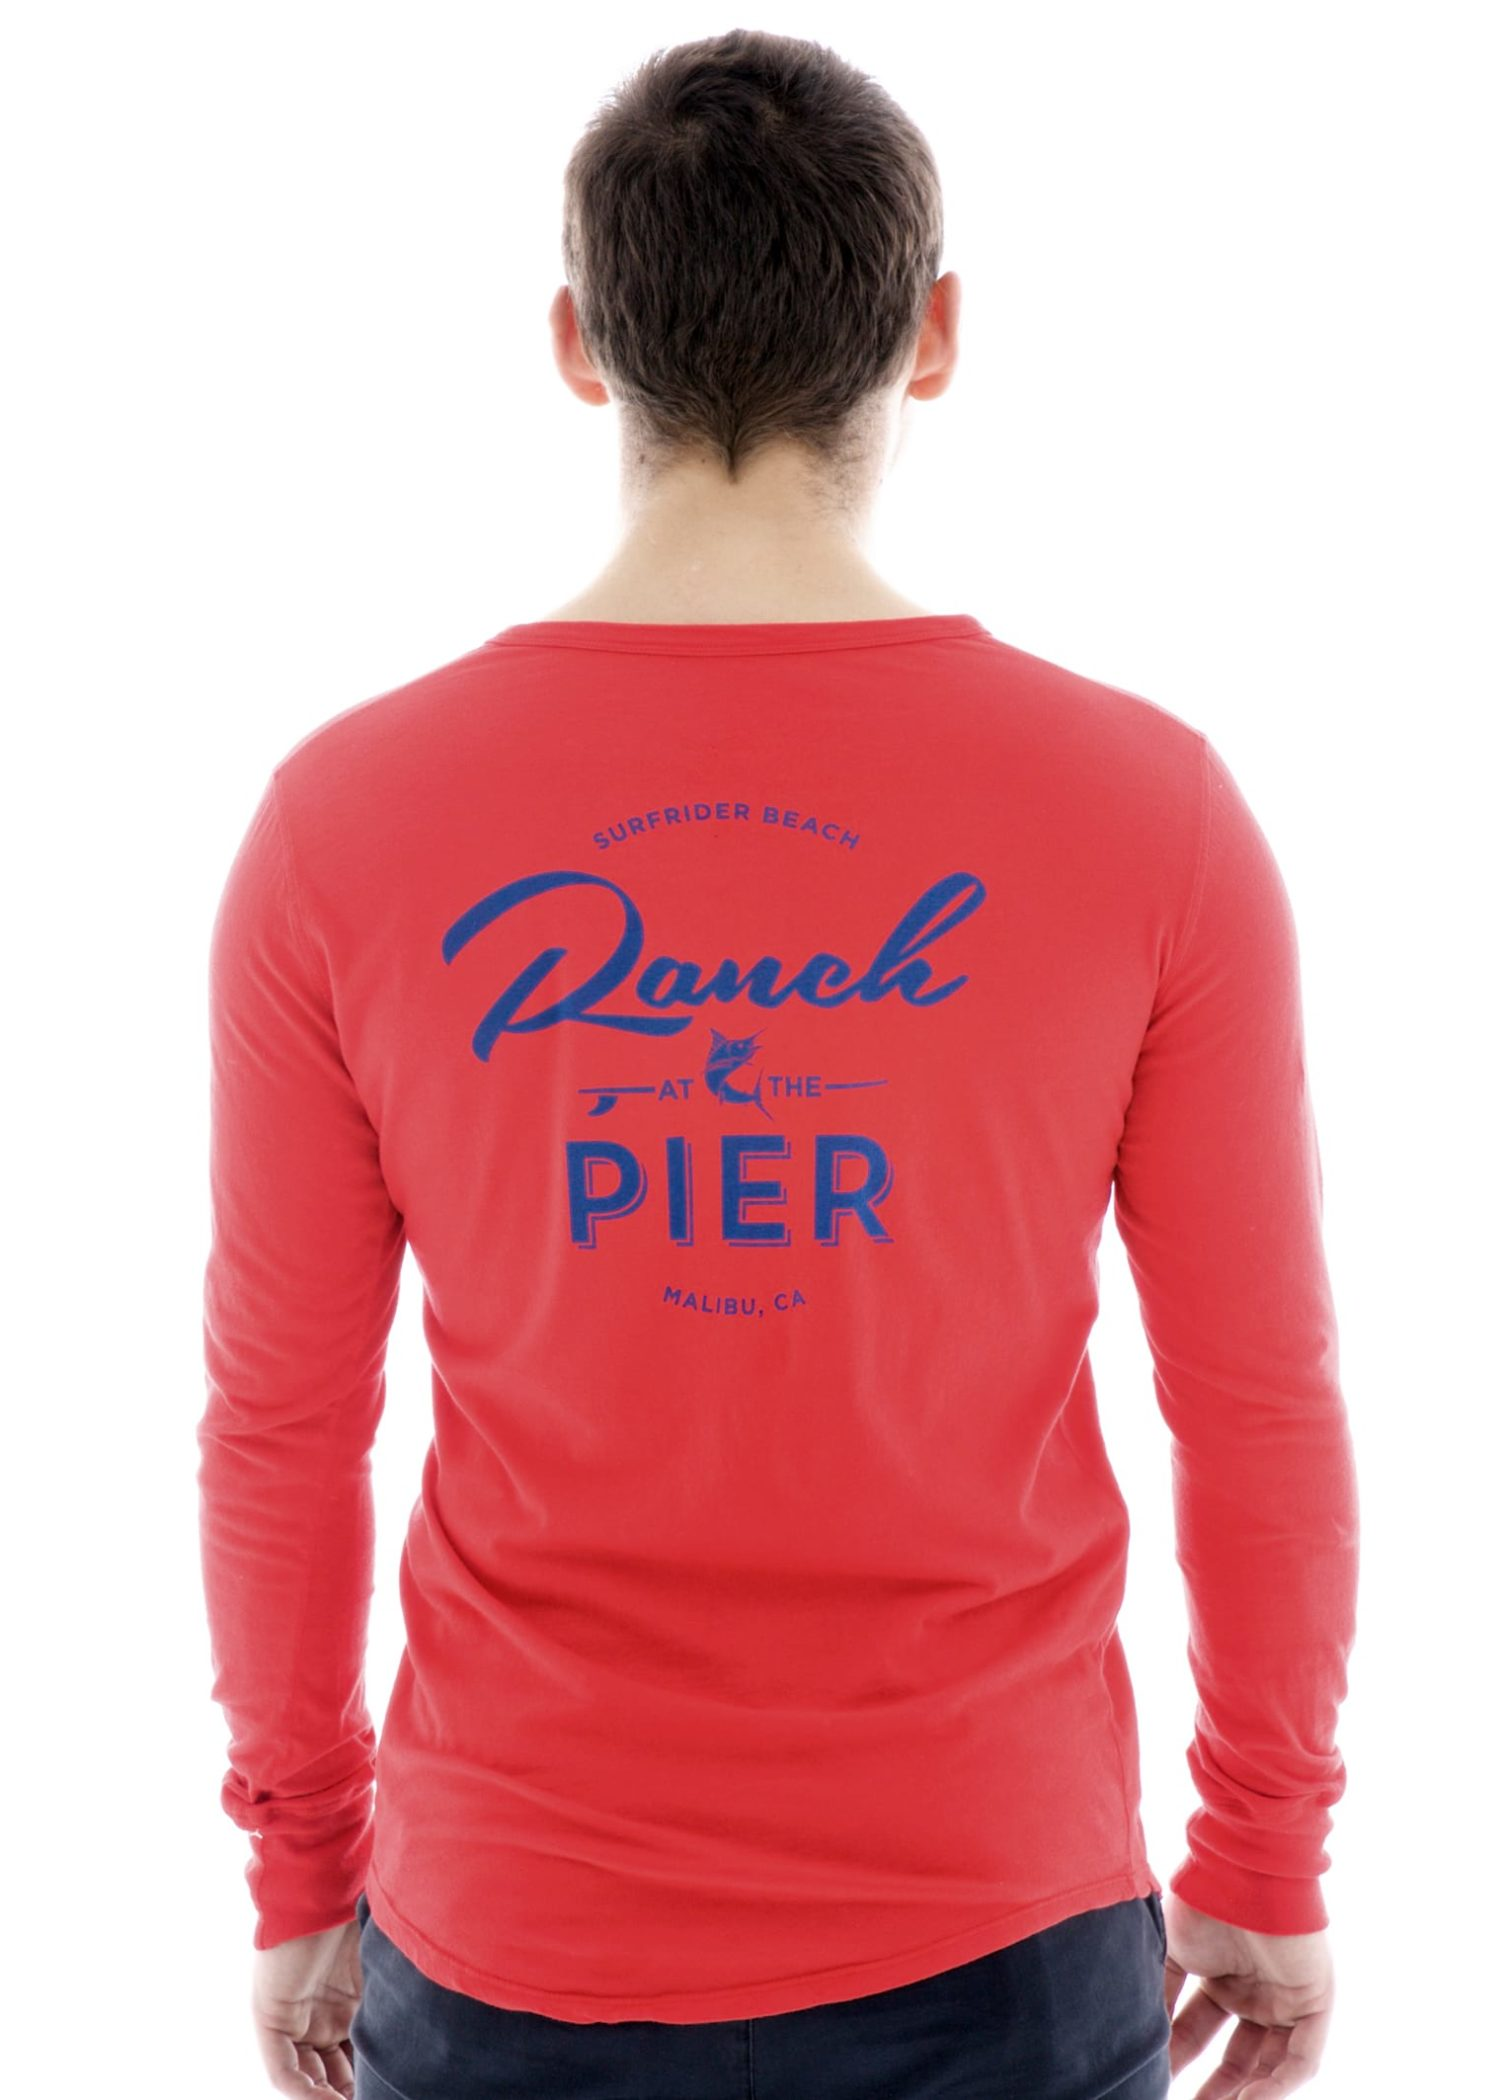 Vintage Long Sleeve Henley T-Shirt with Logo